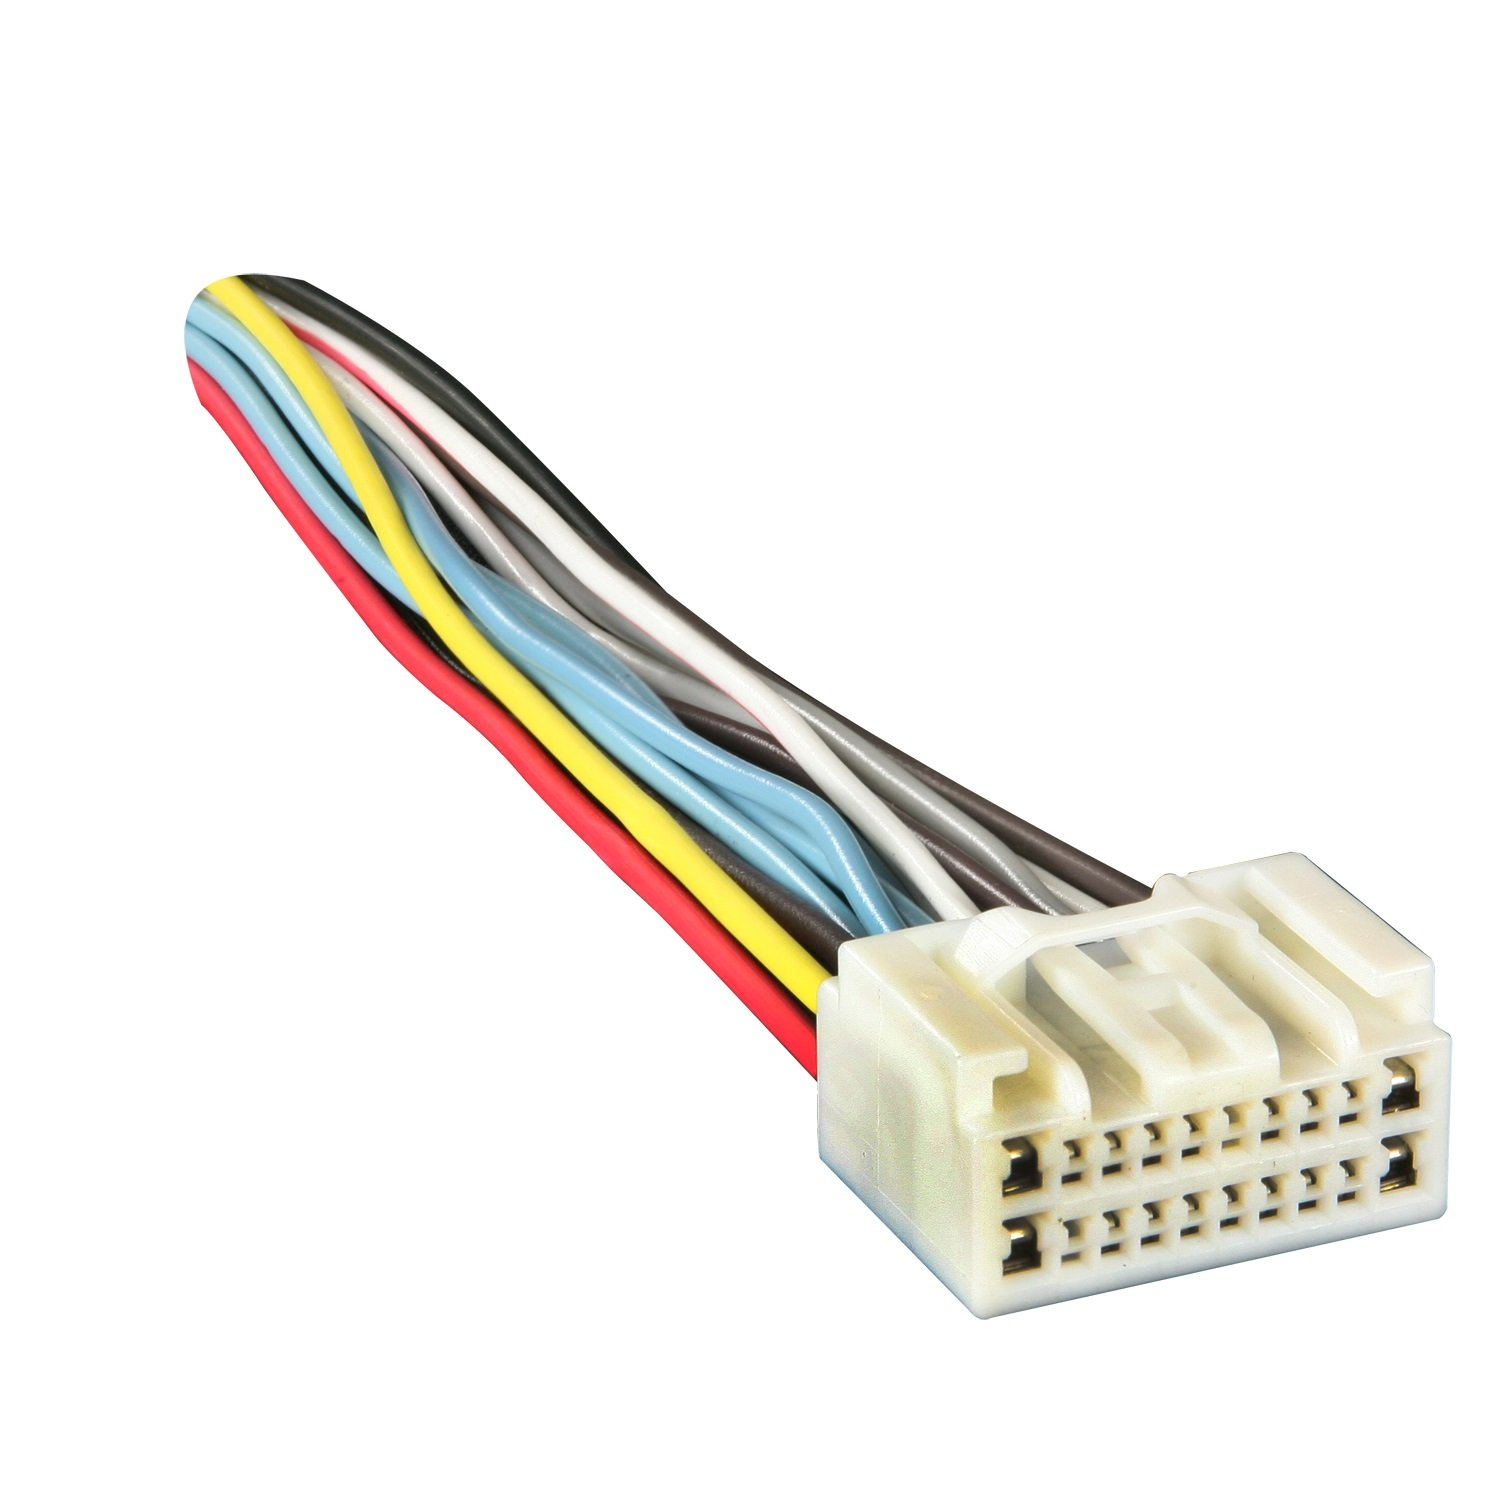 61k6eVpKLJL._SL1500_ amazon com metra 71 8113 reverse wiring harness for select 2000 stereo wiring harness at bayanpartner.co